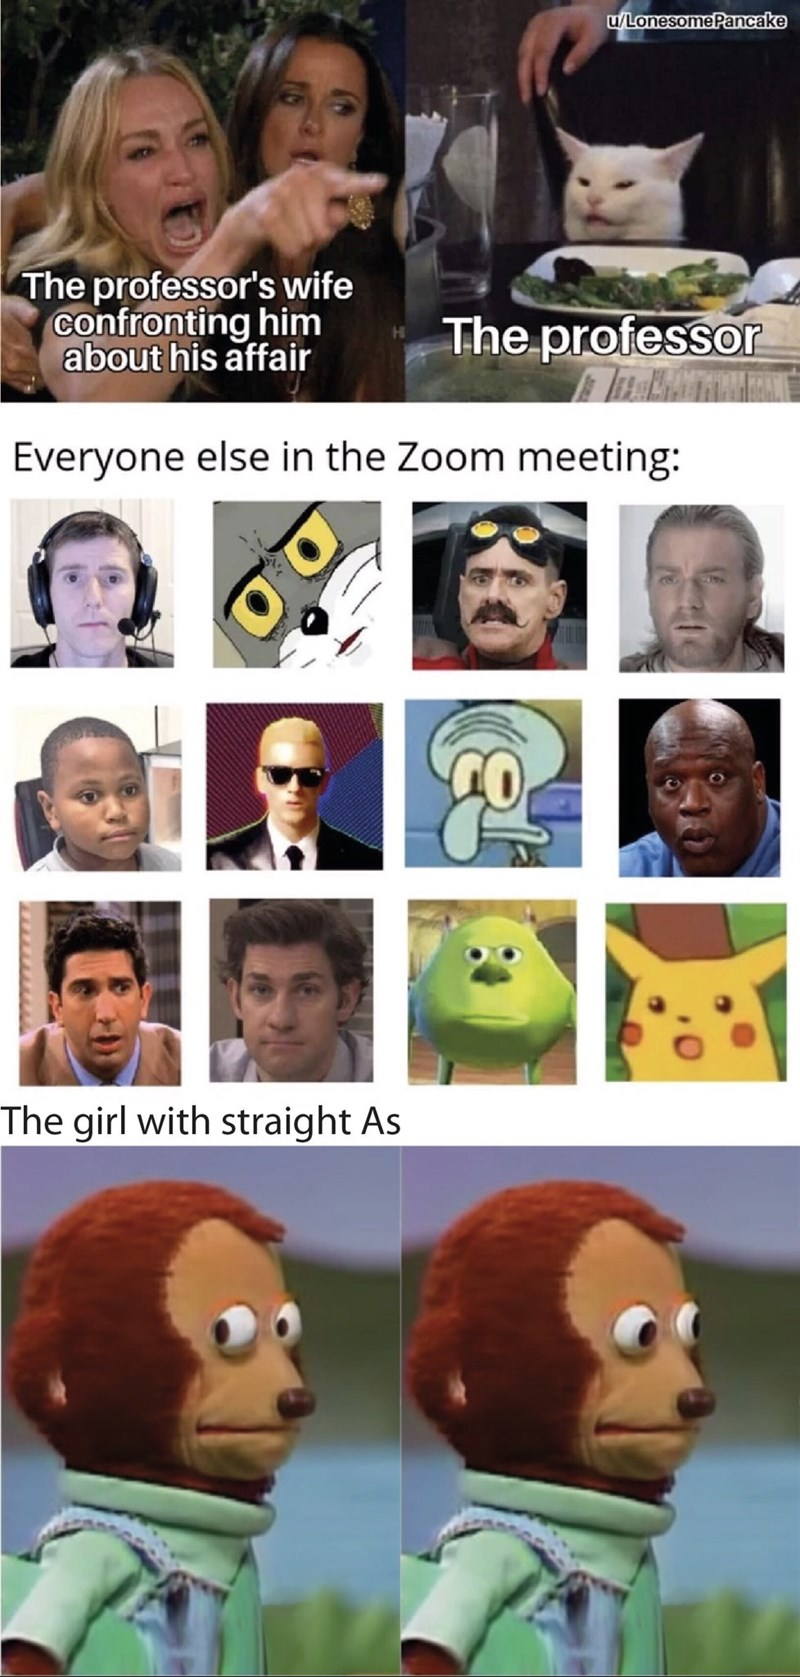 Face - u/LonesomePancake The professor's wife confronting him about his affair The professor Everyone else in the Zoom meeting: The girl with straight As